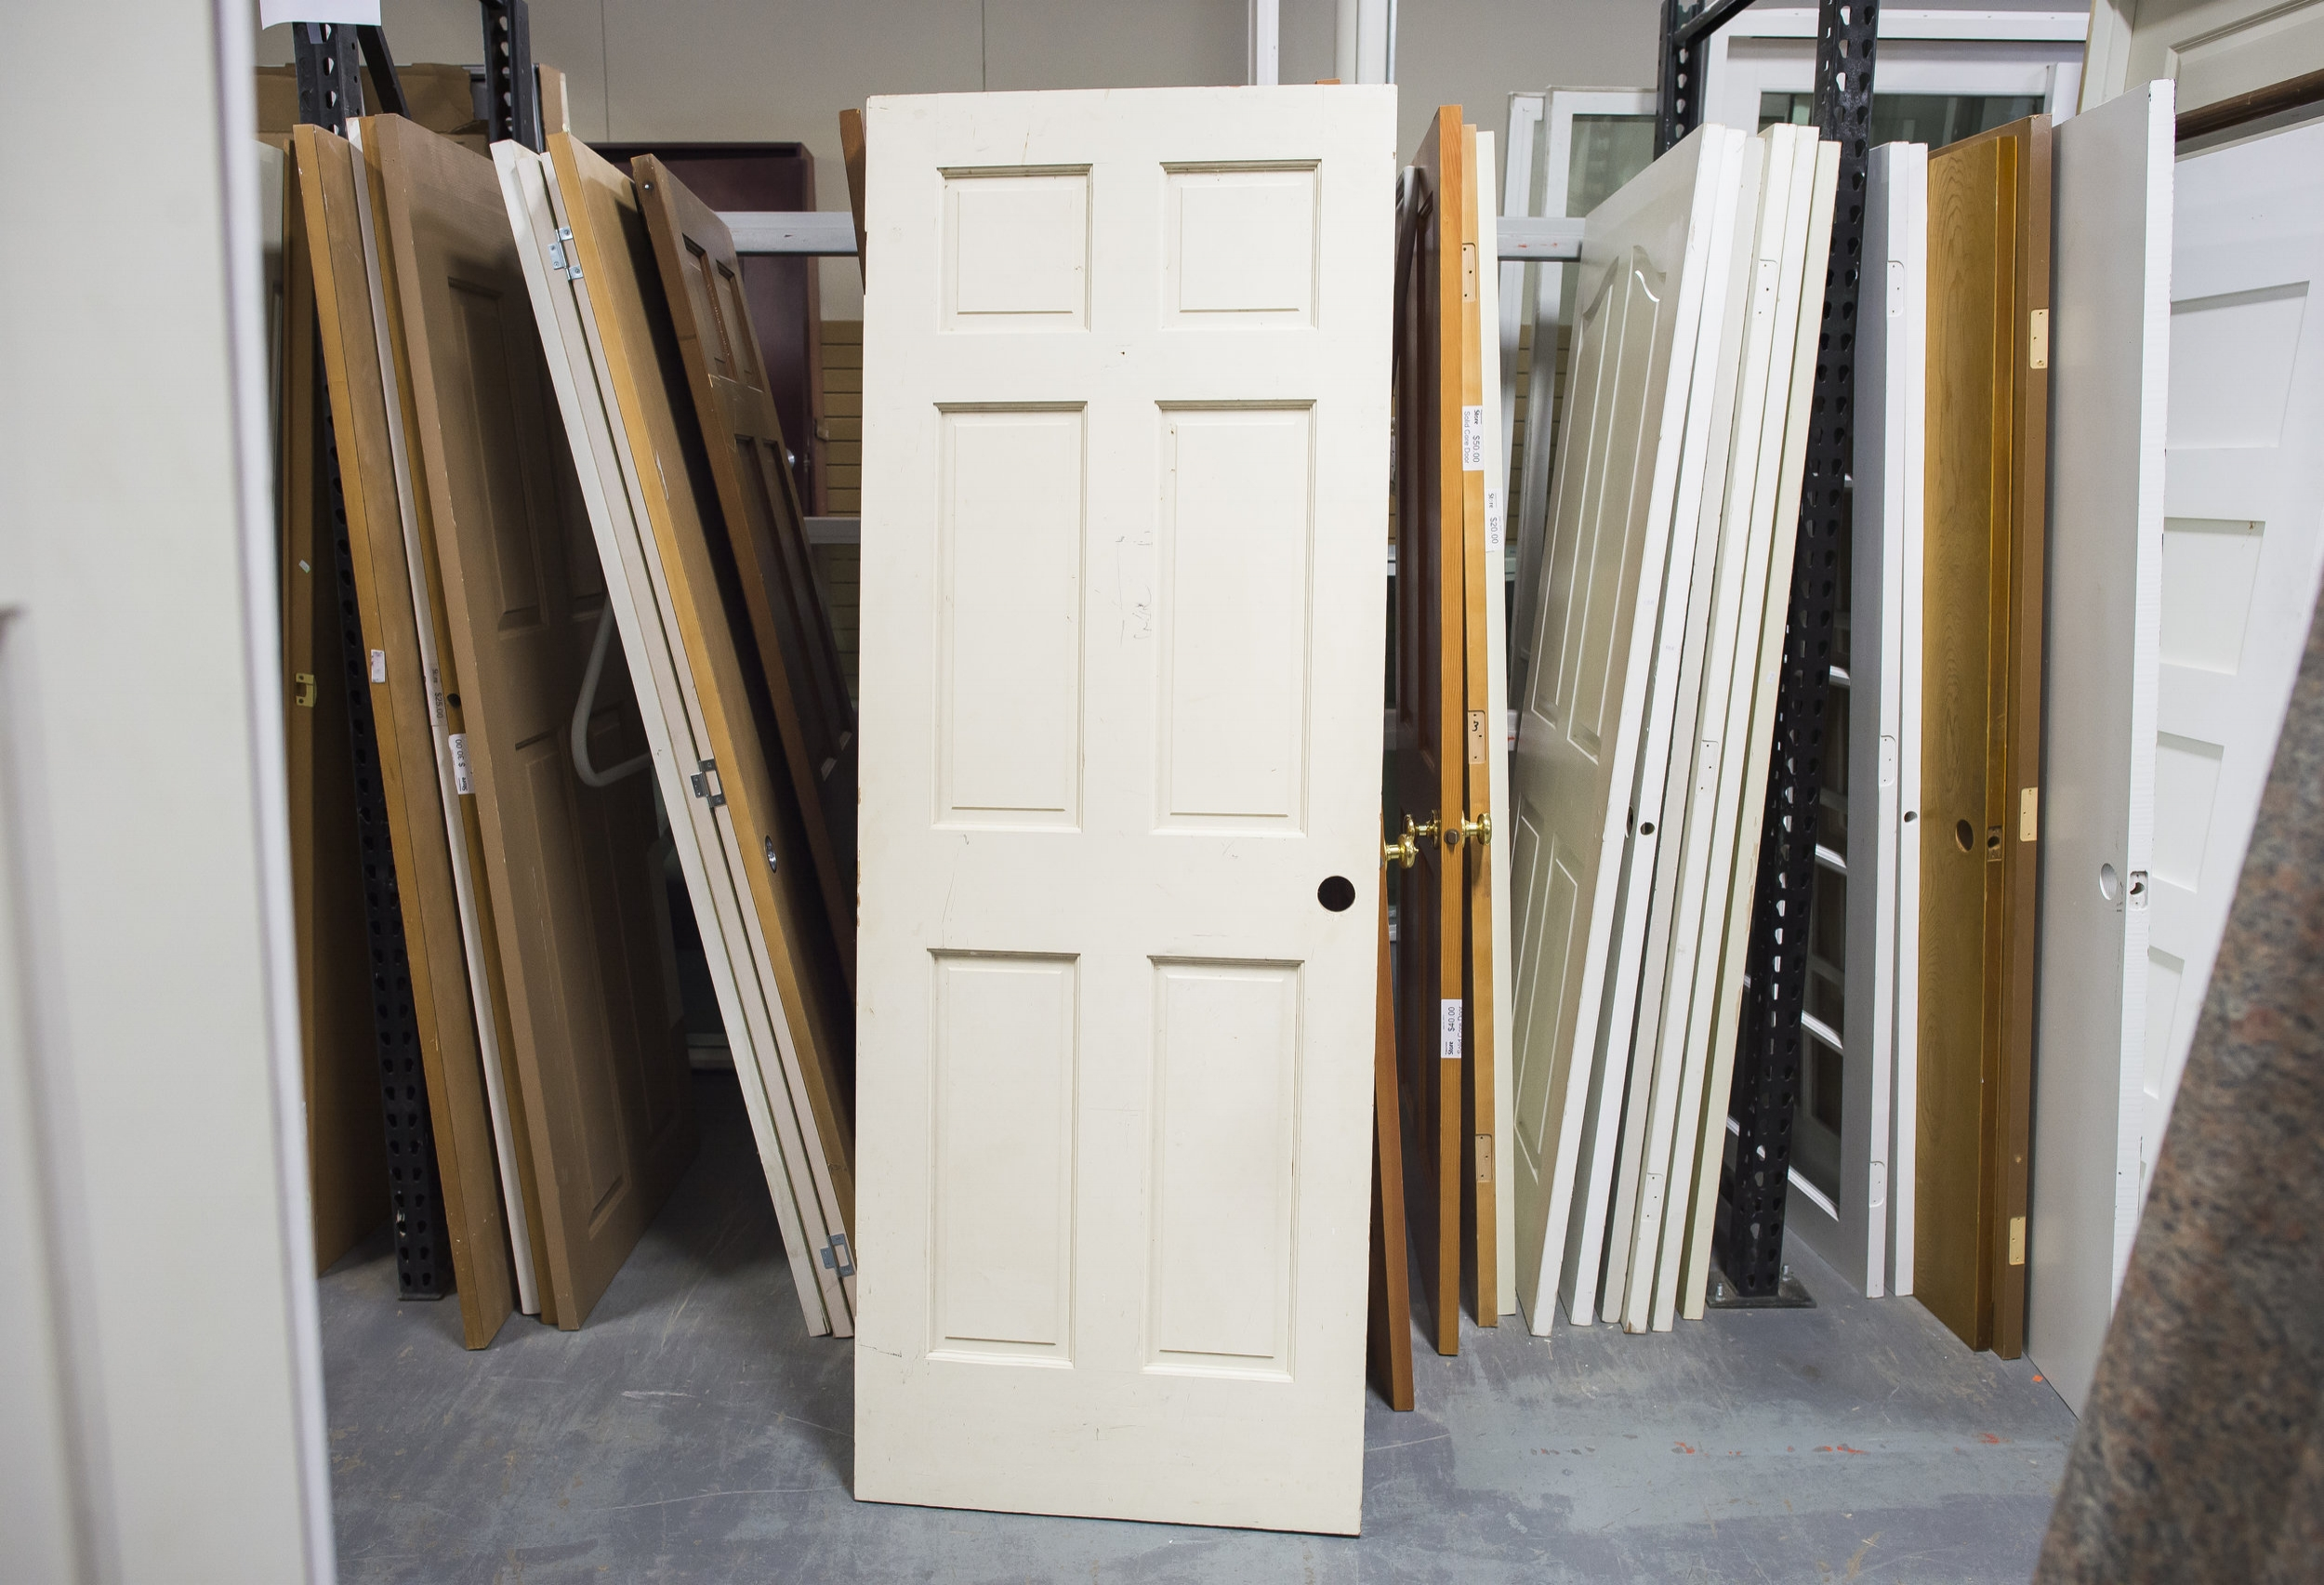 DOORS & WINDOWS   We carry both interior and exterior doors as well as exterior windows. You can also find installation hardware at all of our Habitat stores to help with your project.